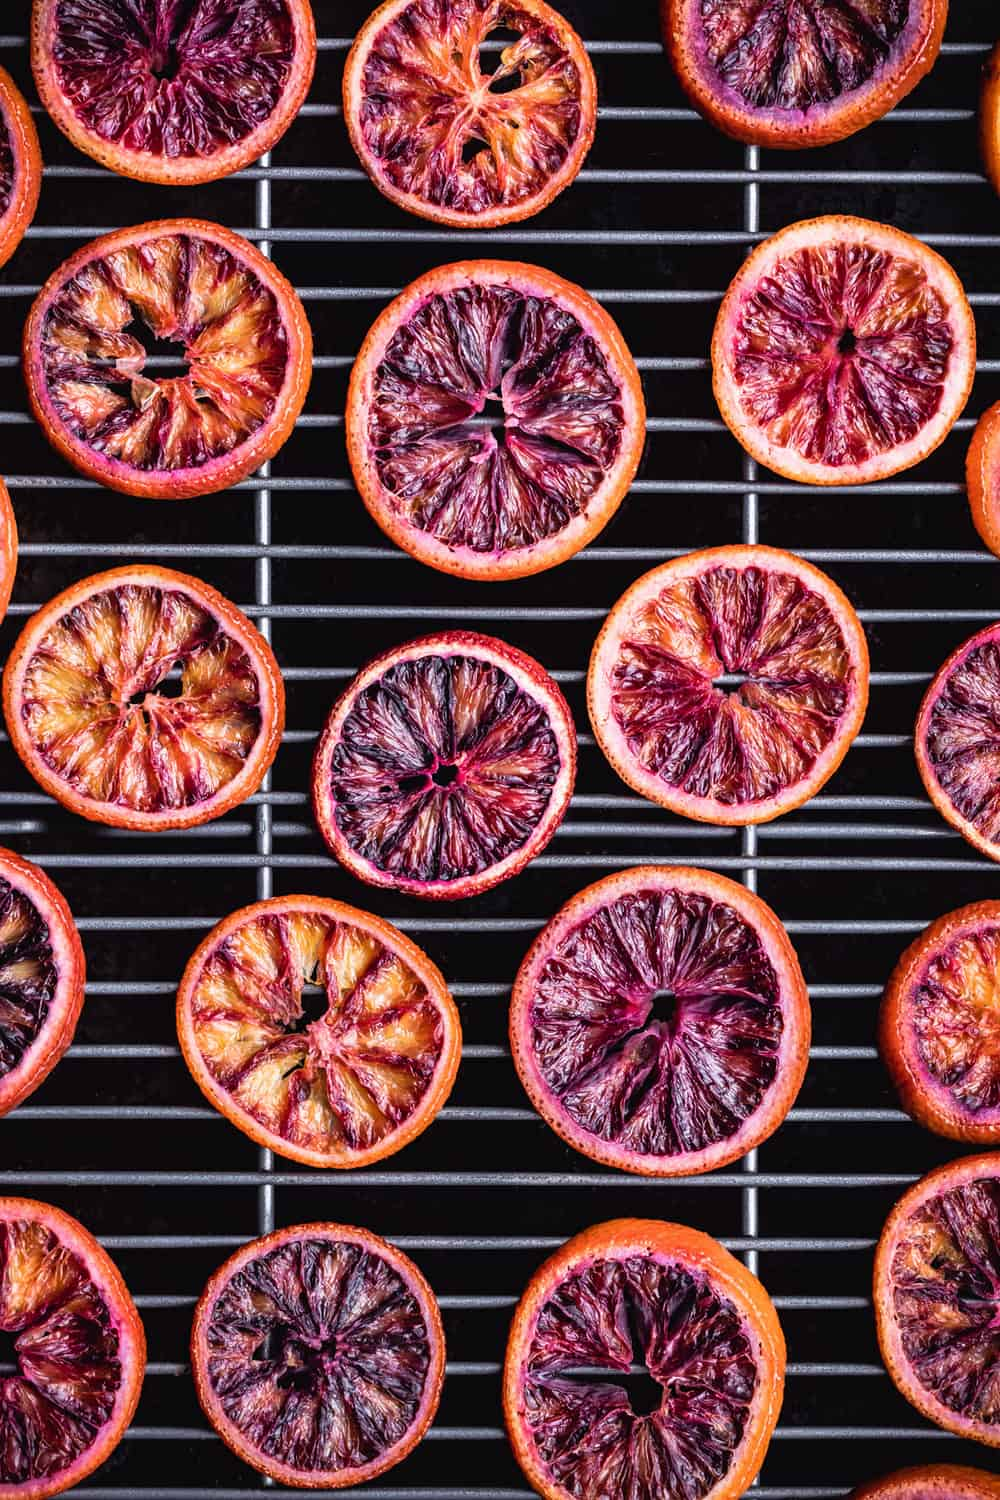 Blood Oranges have been candied and are drying on a cooling rack with a pan underneath to catch any excess drippings.